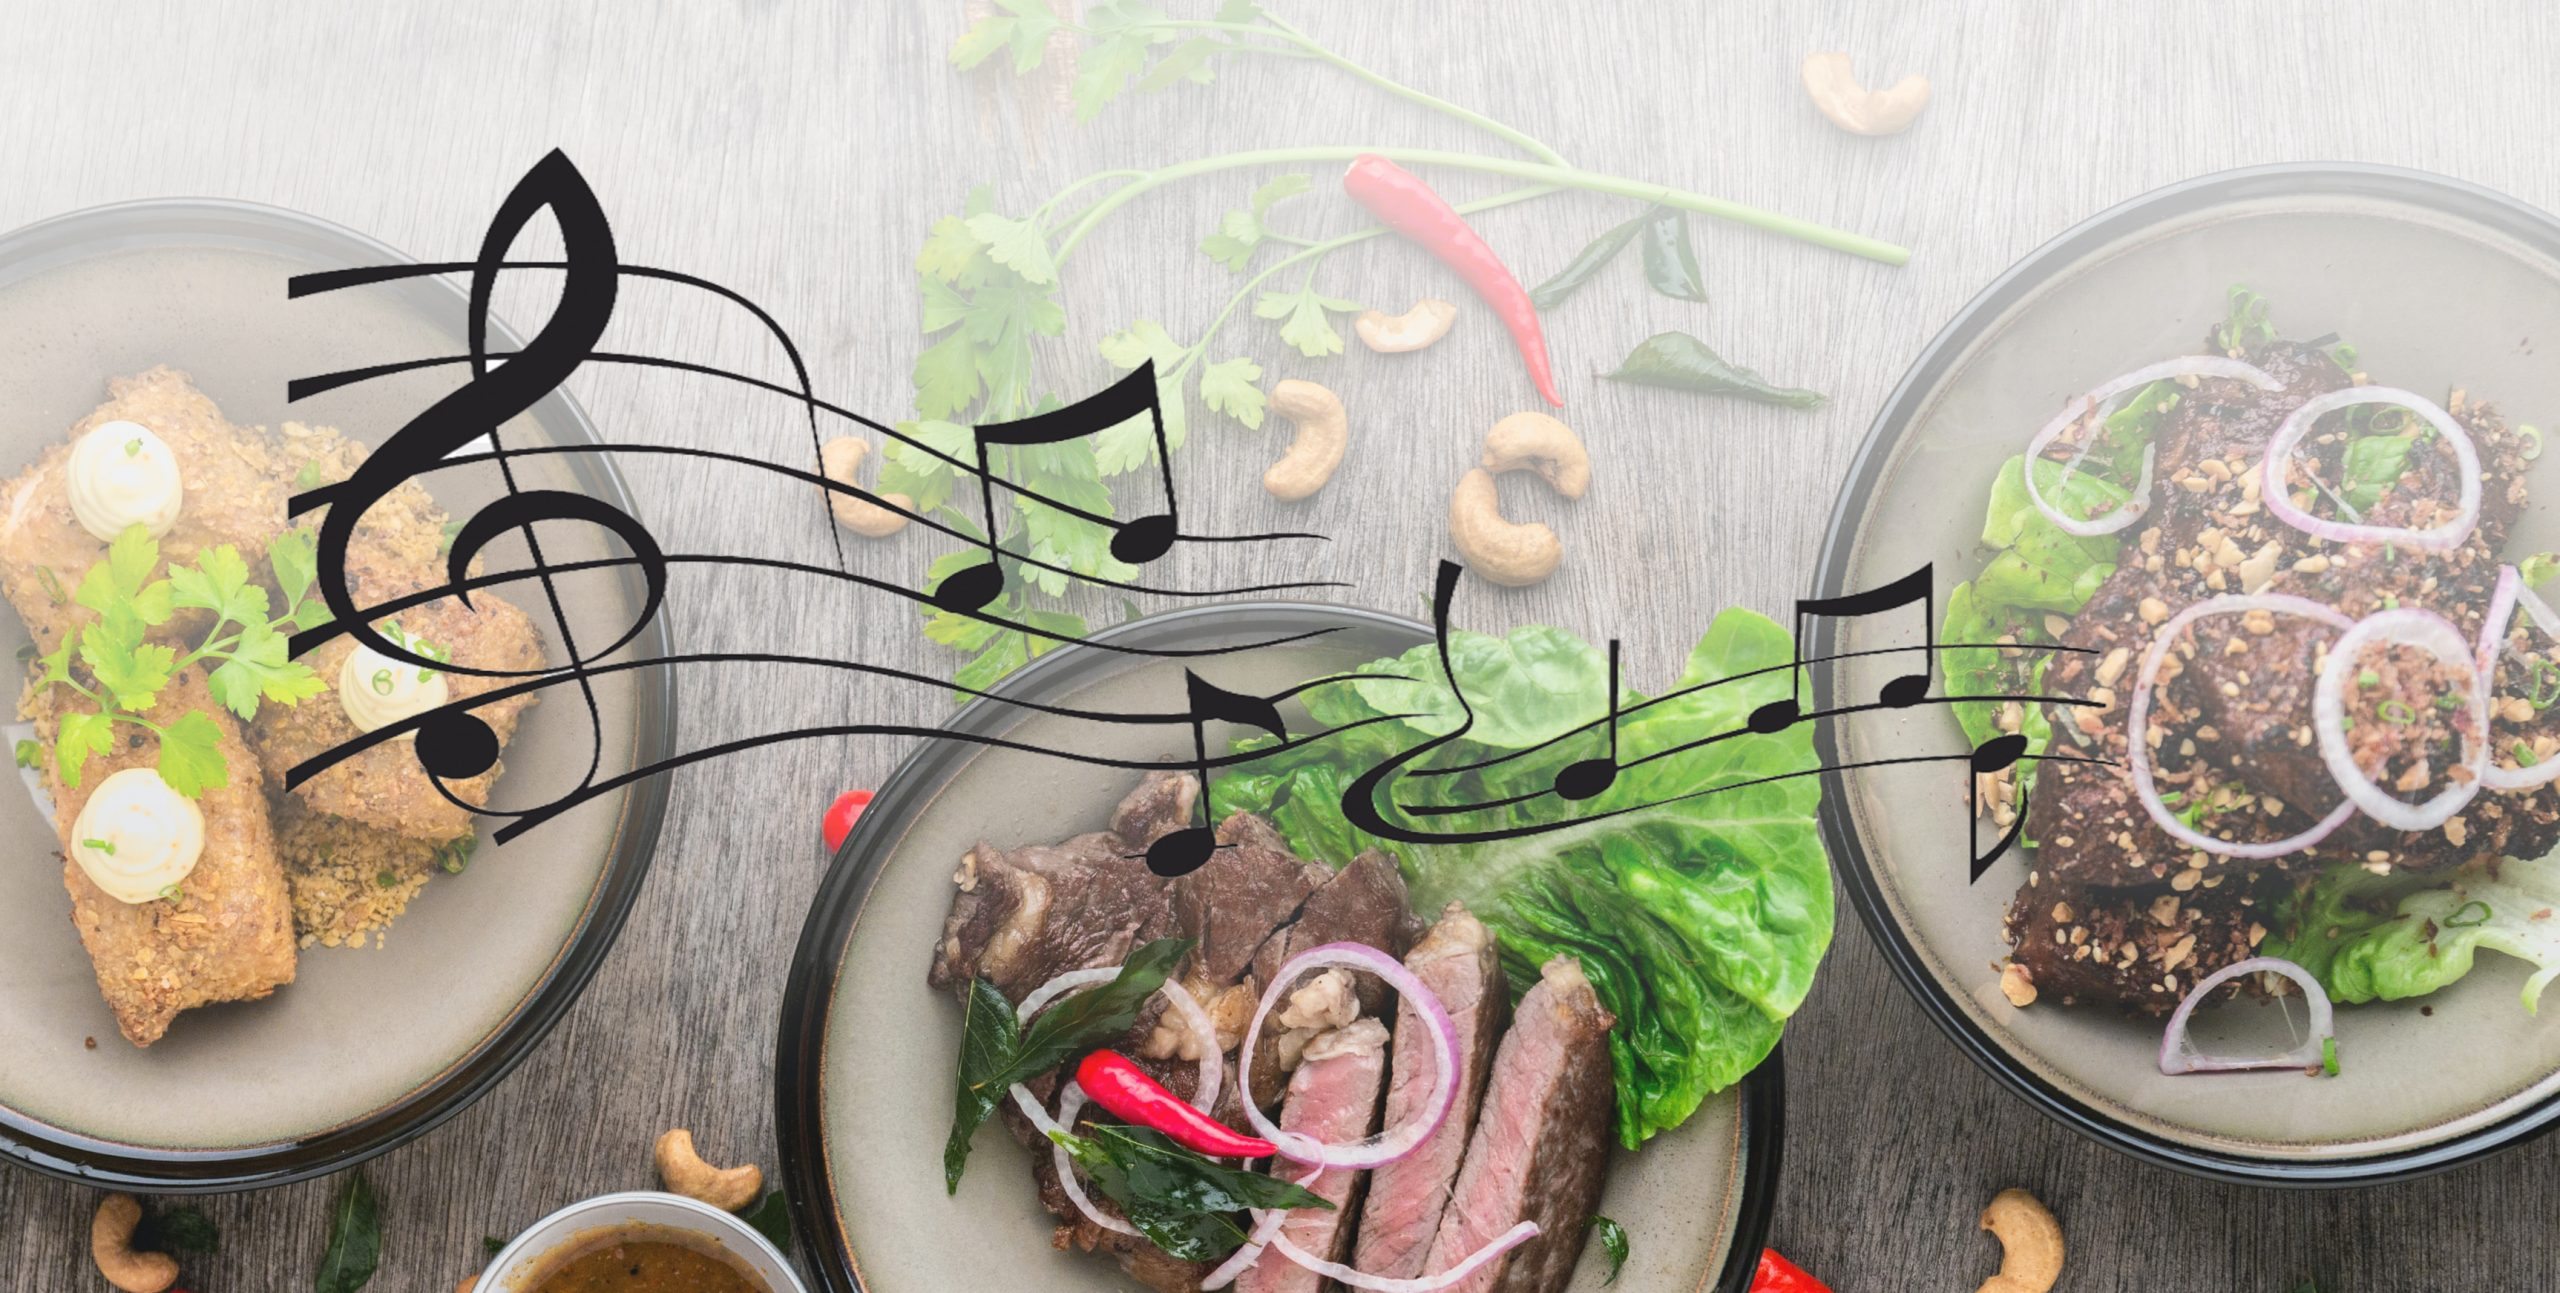 Can music make our food taste better?